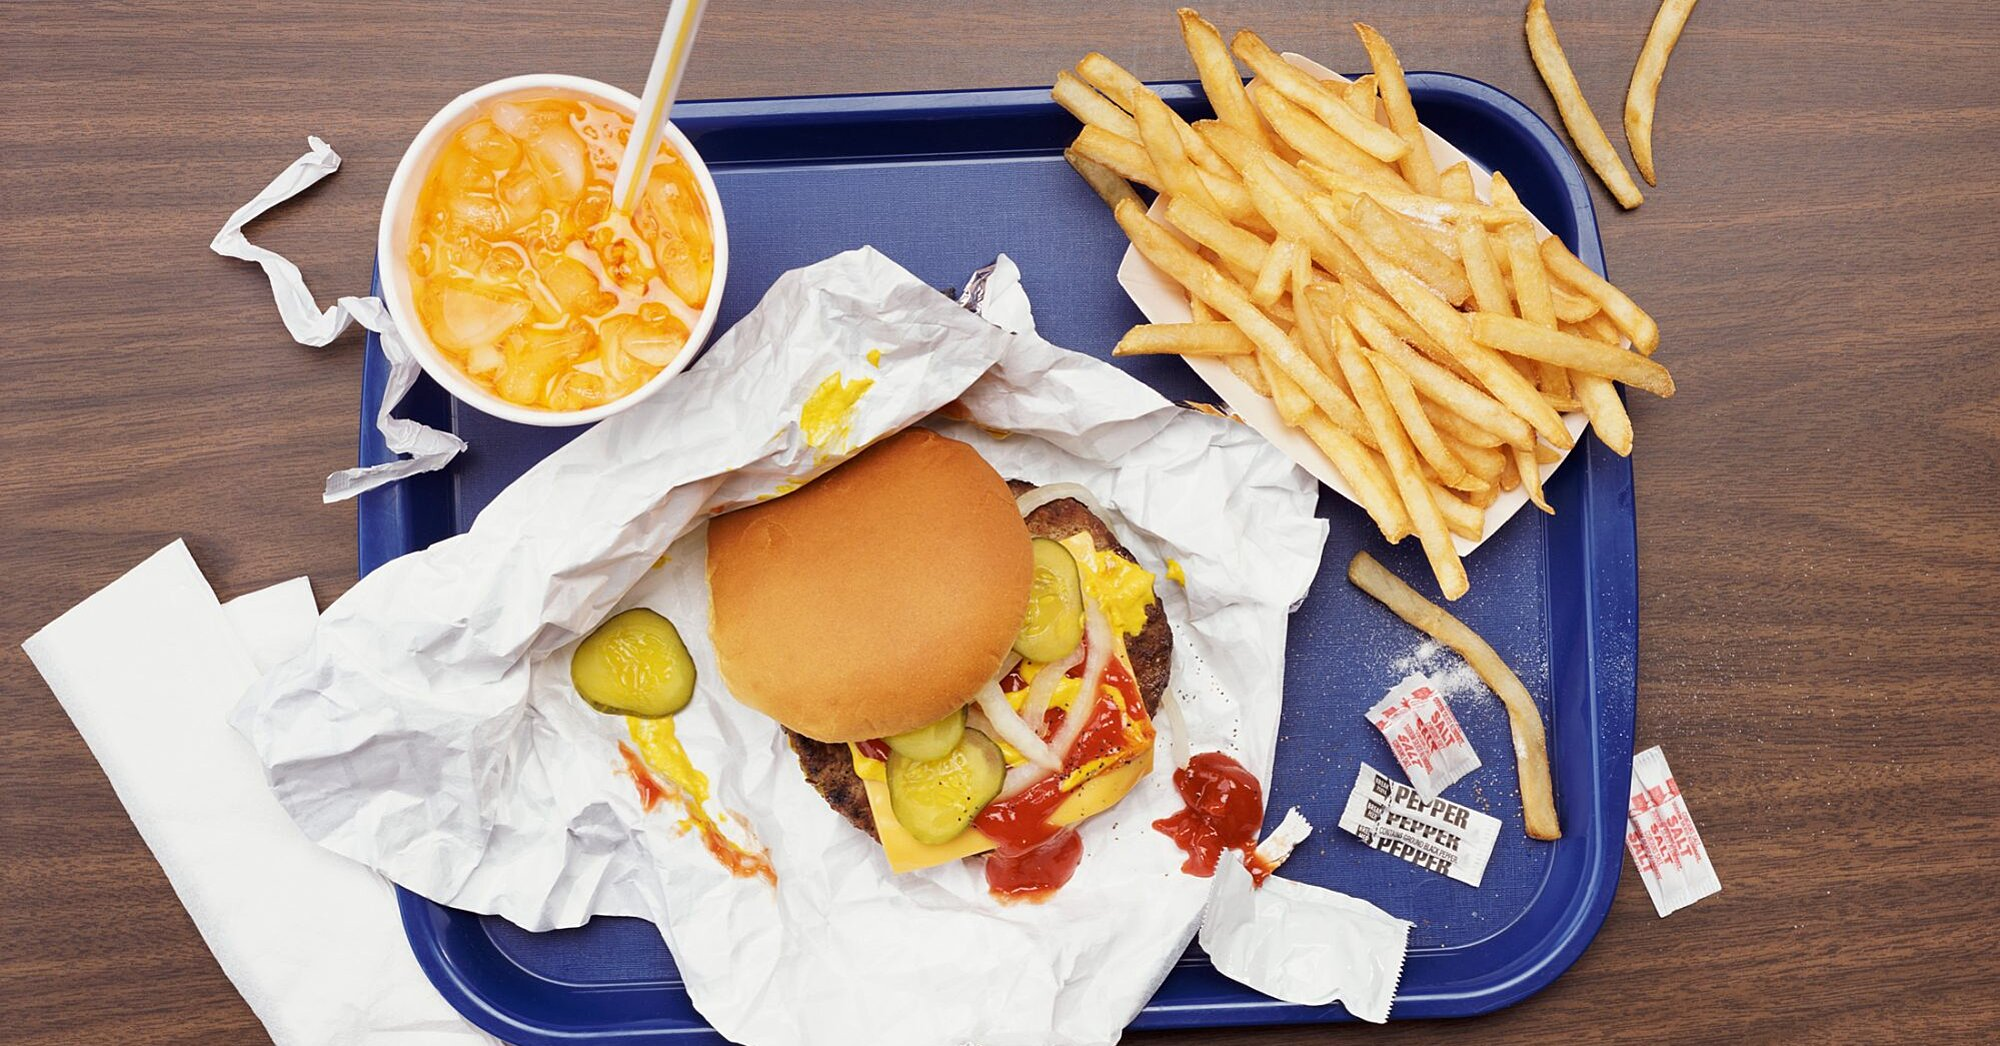 Fast Food Packaging: Are Chemicals Leaking into Your Food?